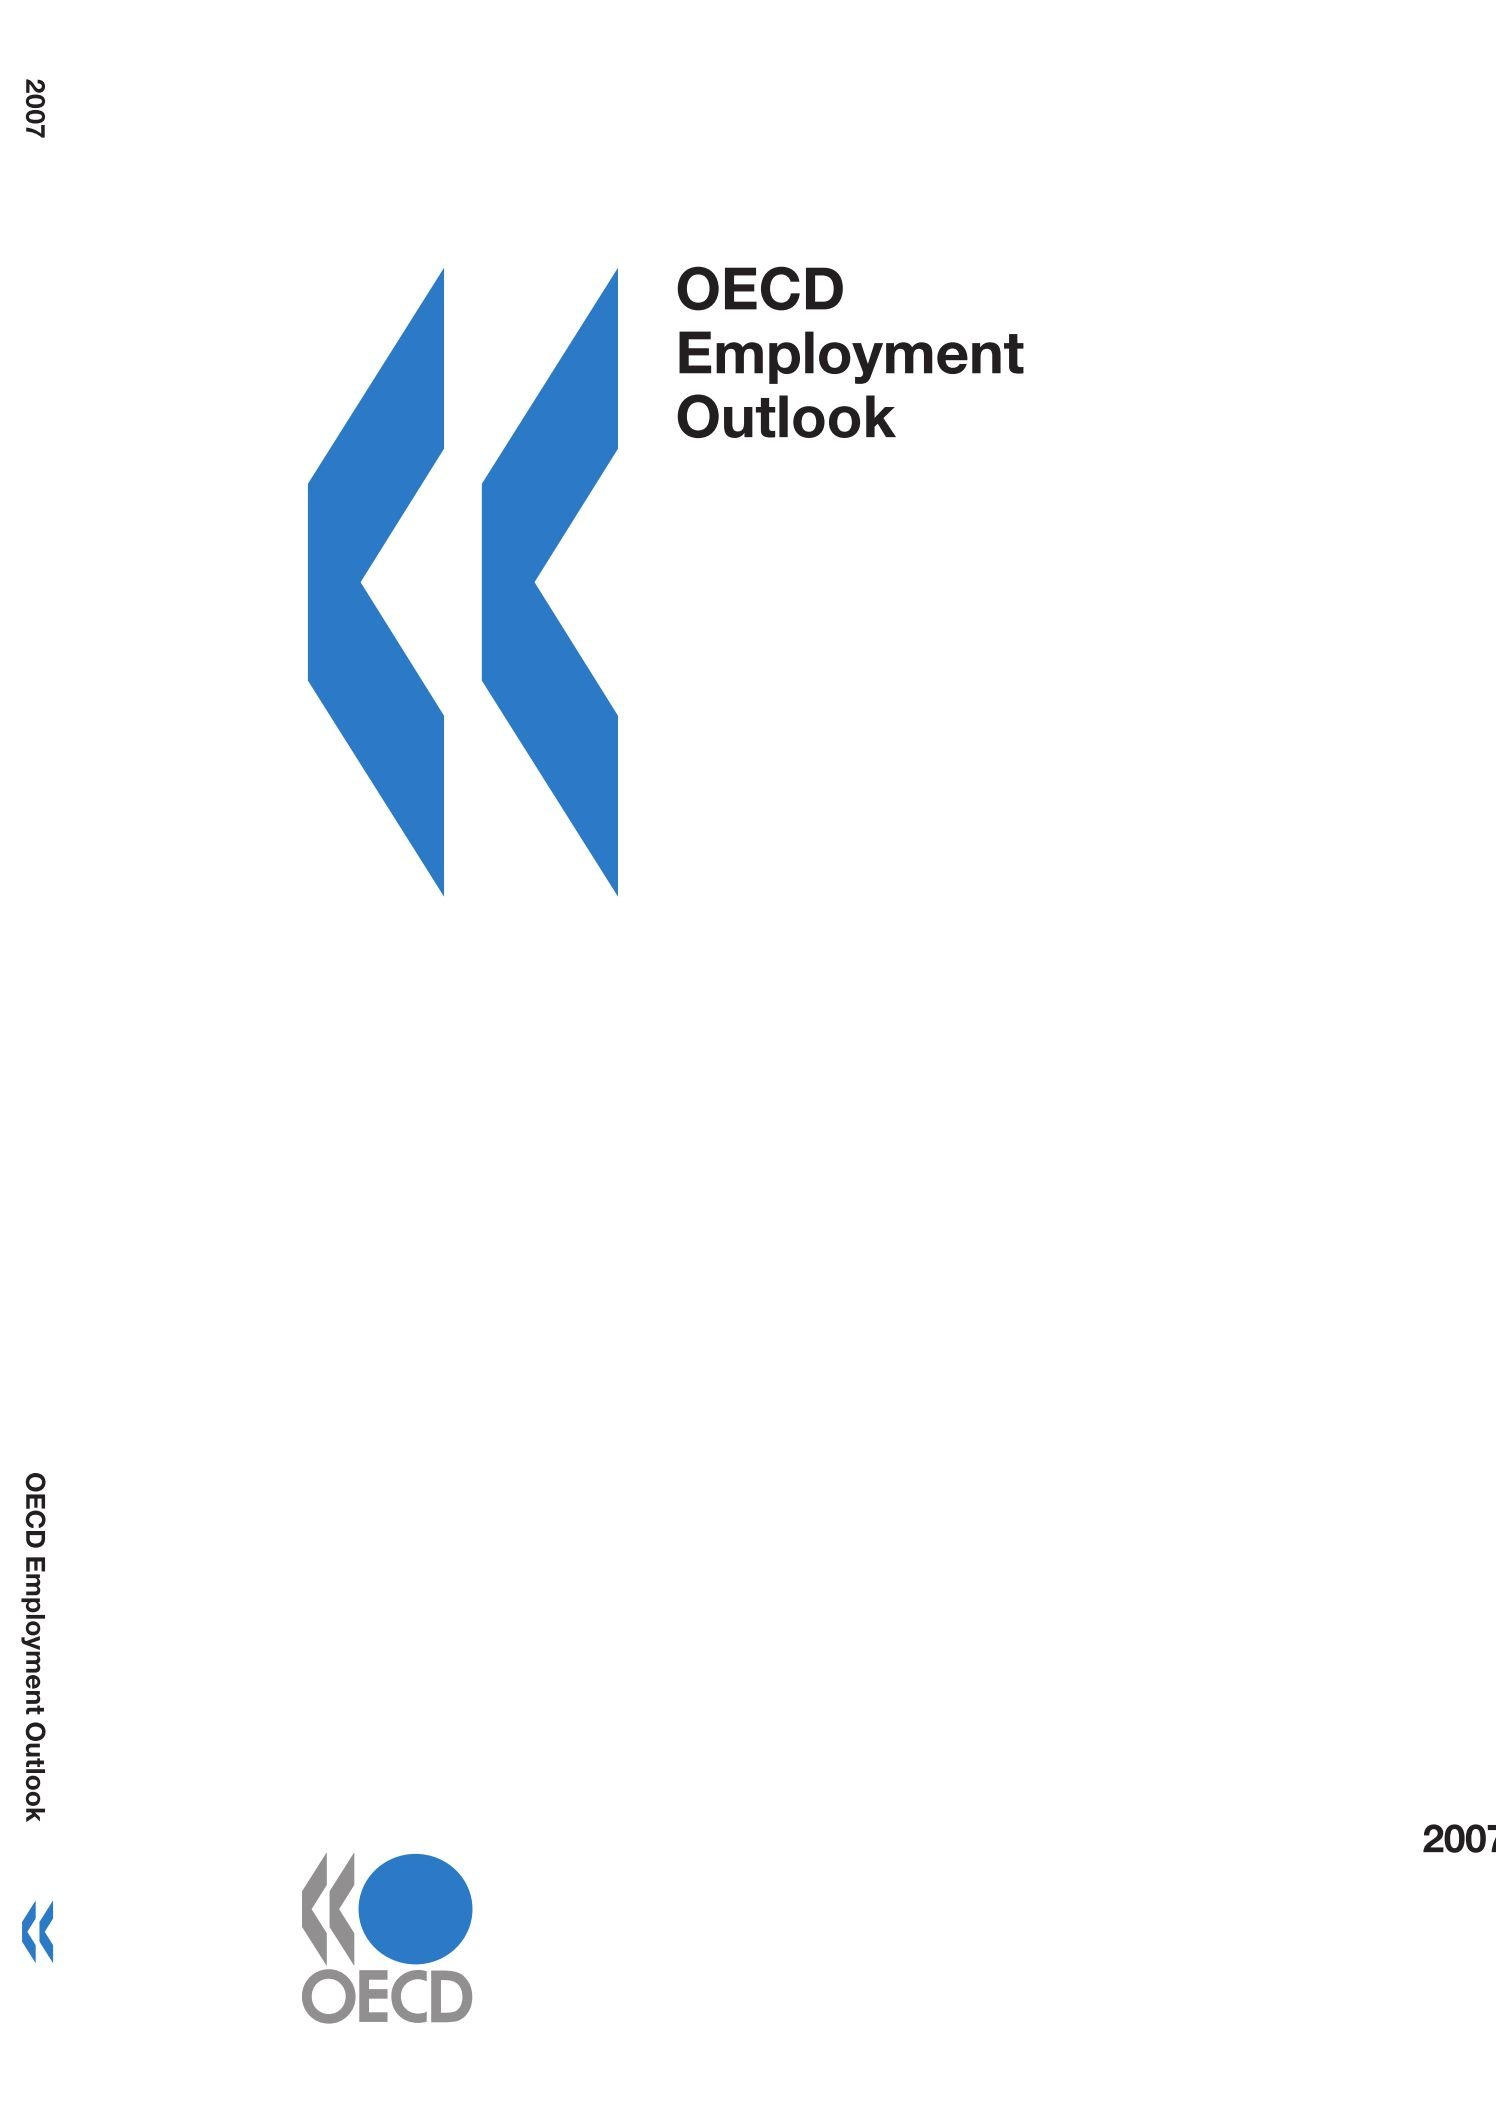 OECD Employment Outlook - 2007 Edition